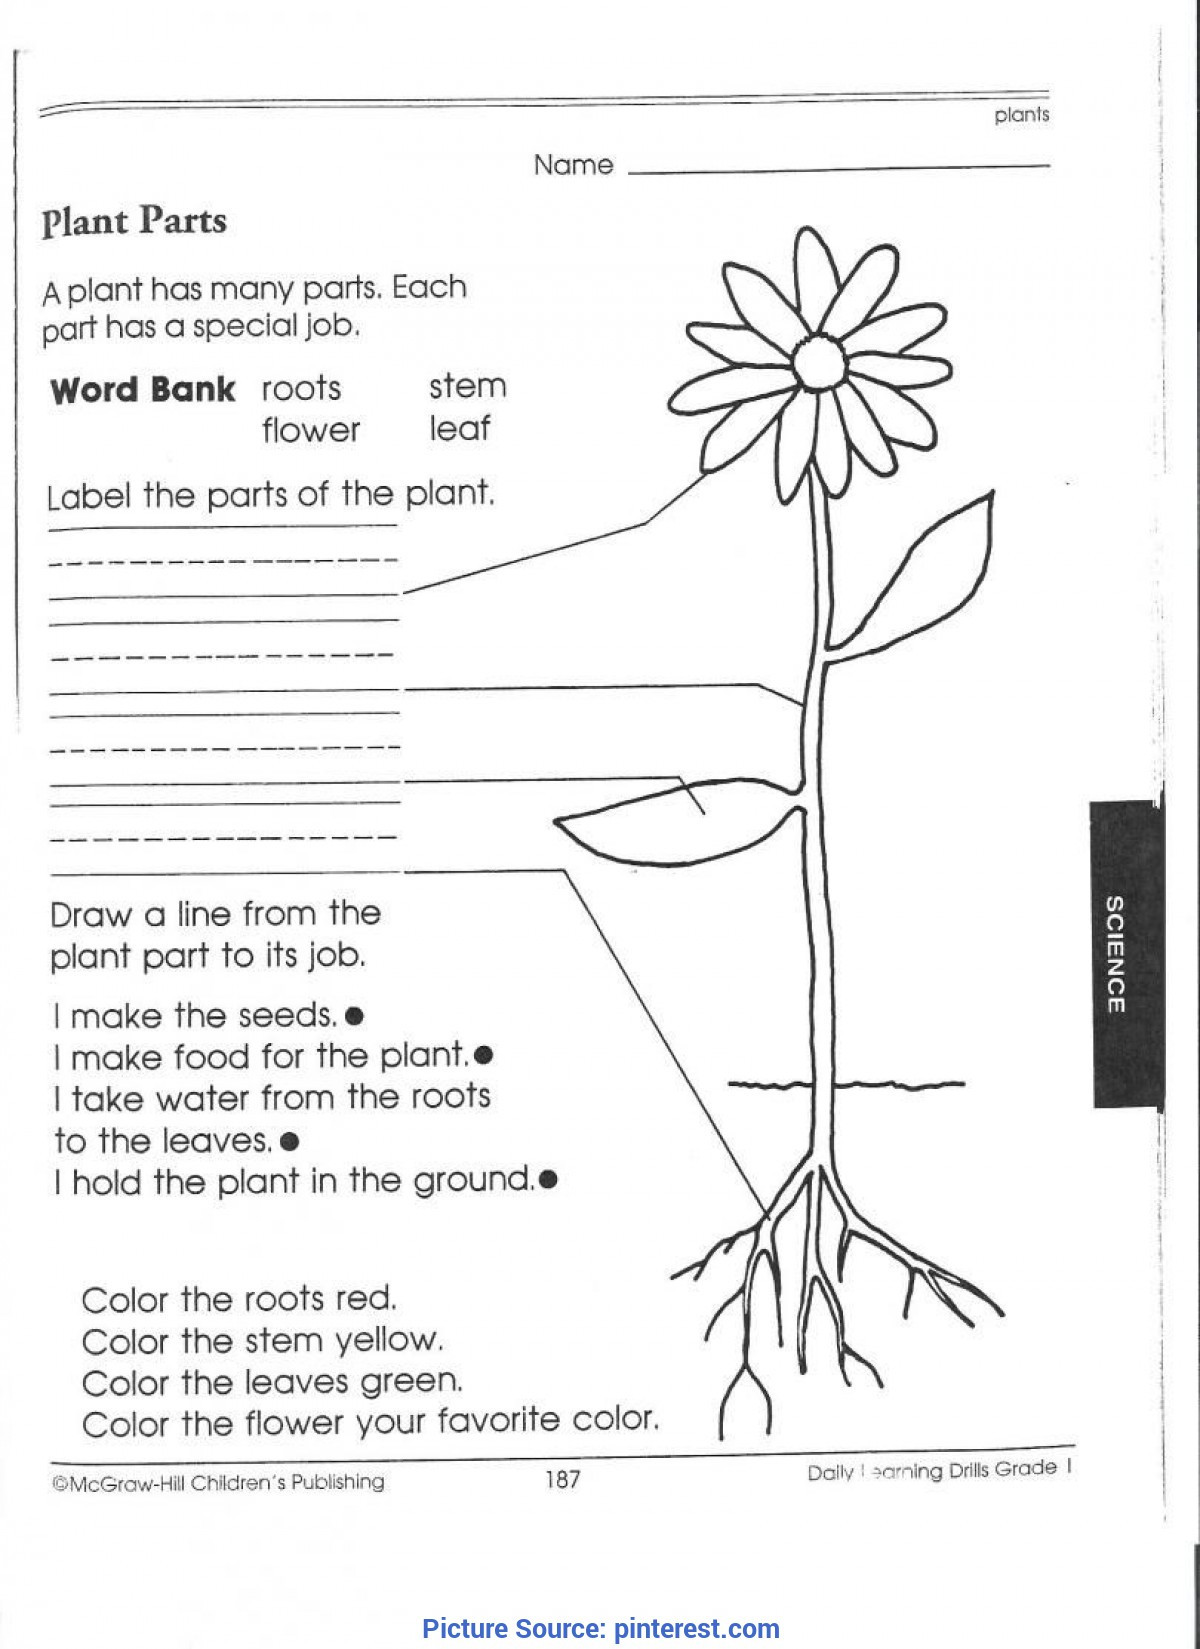 5th Grade Science Worksheets Pdf Best Third Grade Science Activities 1st Grade Science